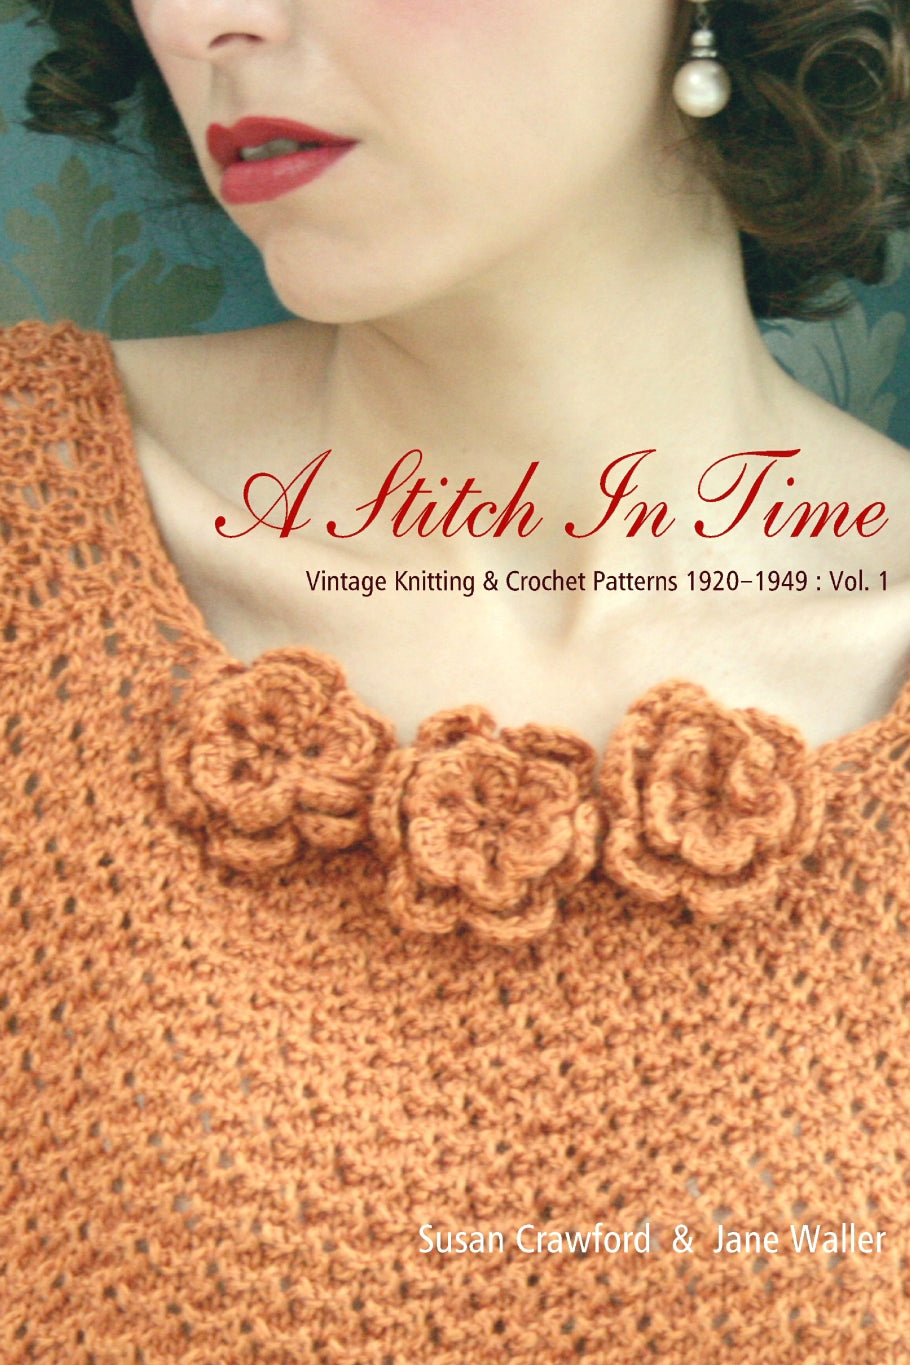 Cover of the book A Stitch in Time volume 1. An image of a woman from the nose down. She wears a peach coloured top with flower embellishments. She has brown curled hair, pearl earrings and red lipstick.